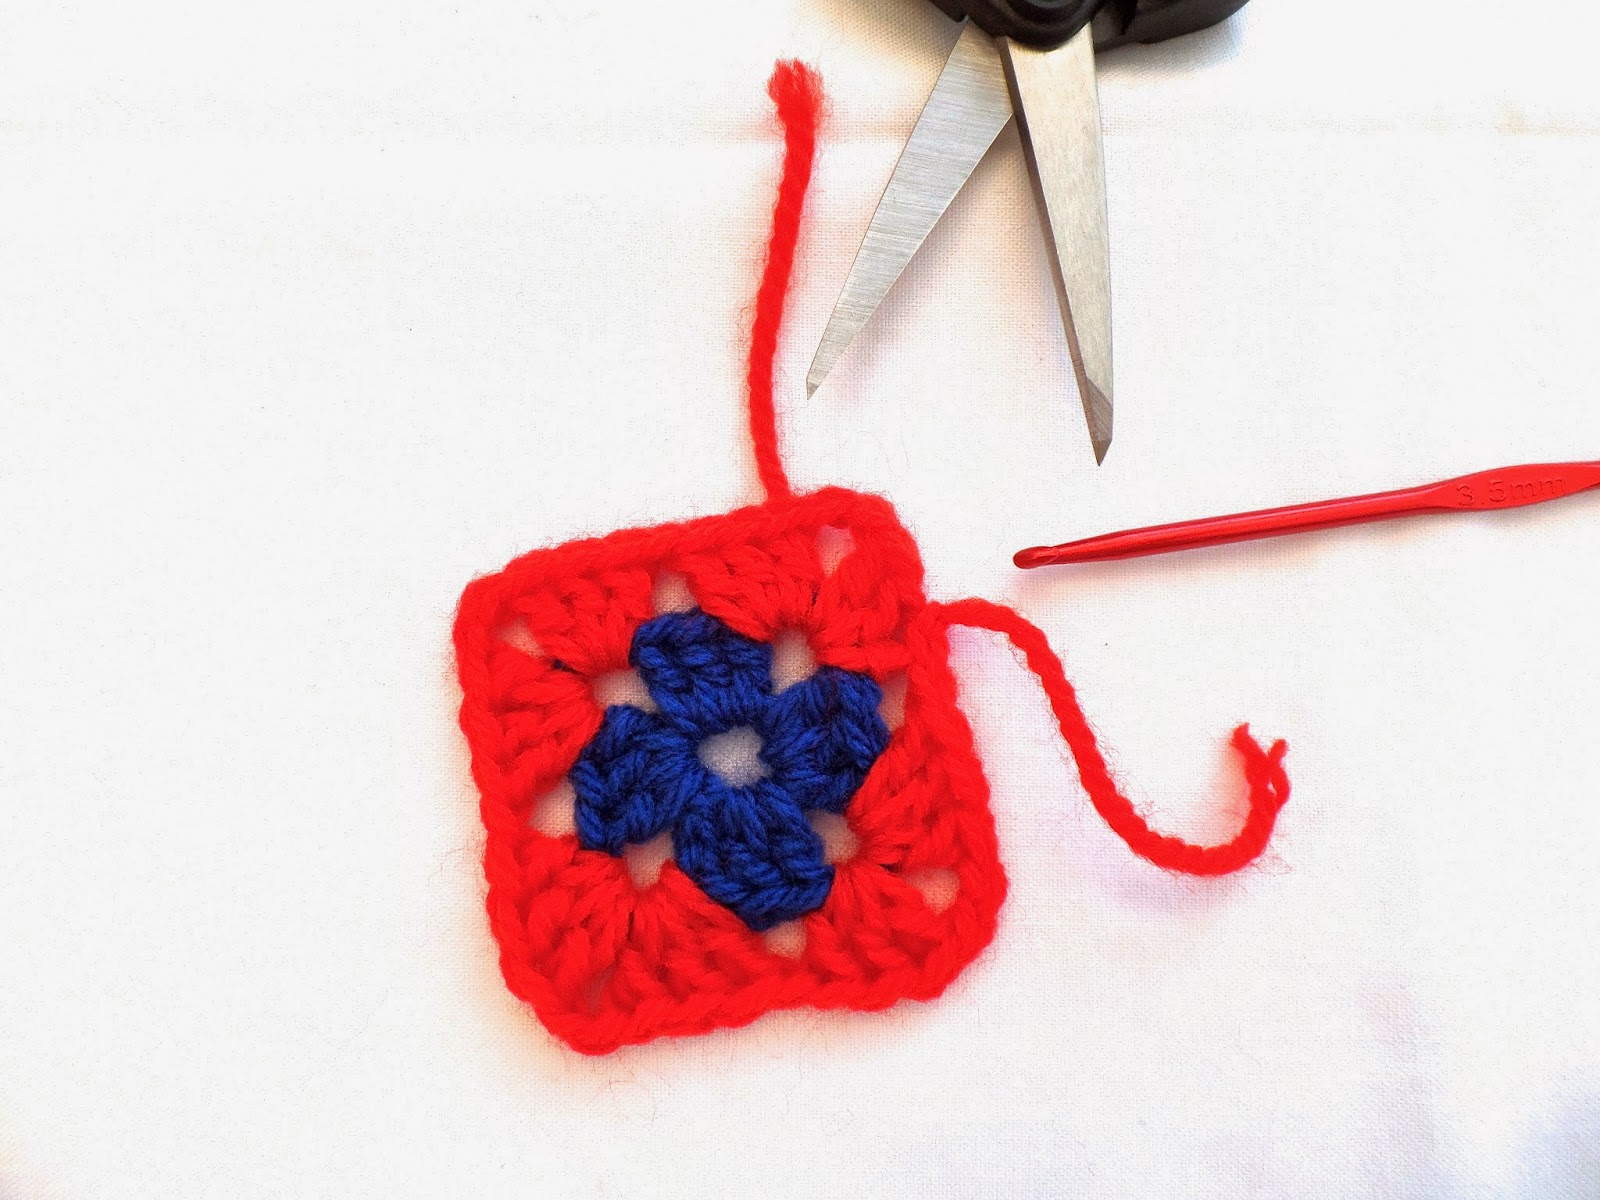 step by step tutorial on how to make a granny square